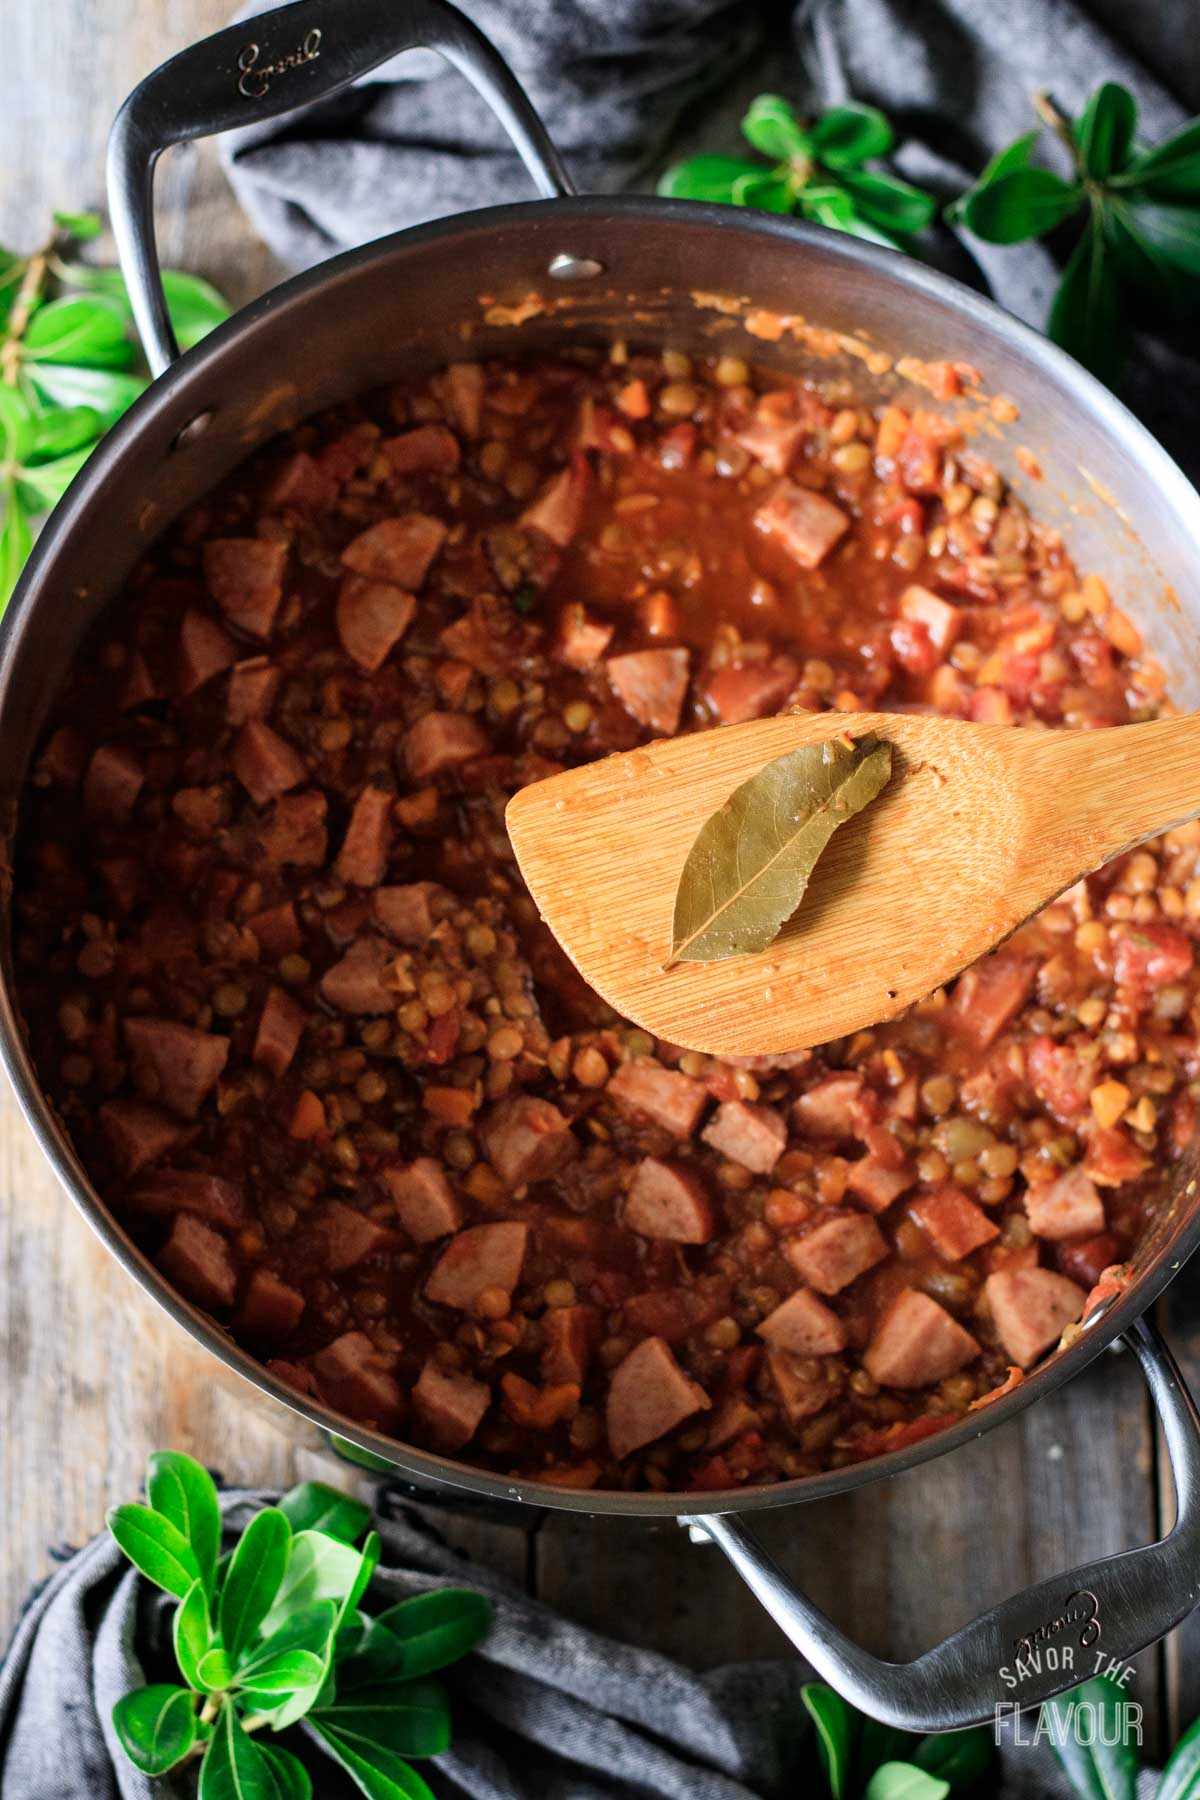 removing the bay leaf from the pot of lentil stew